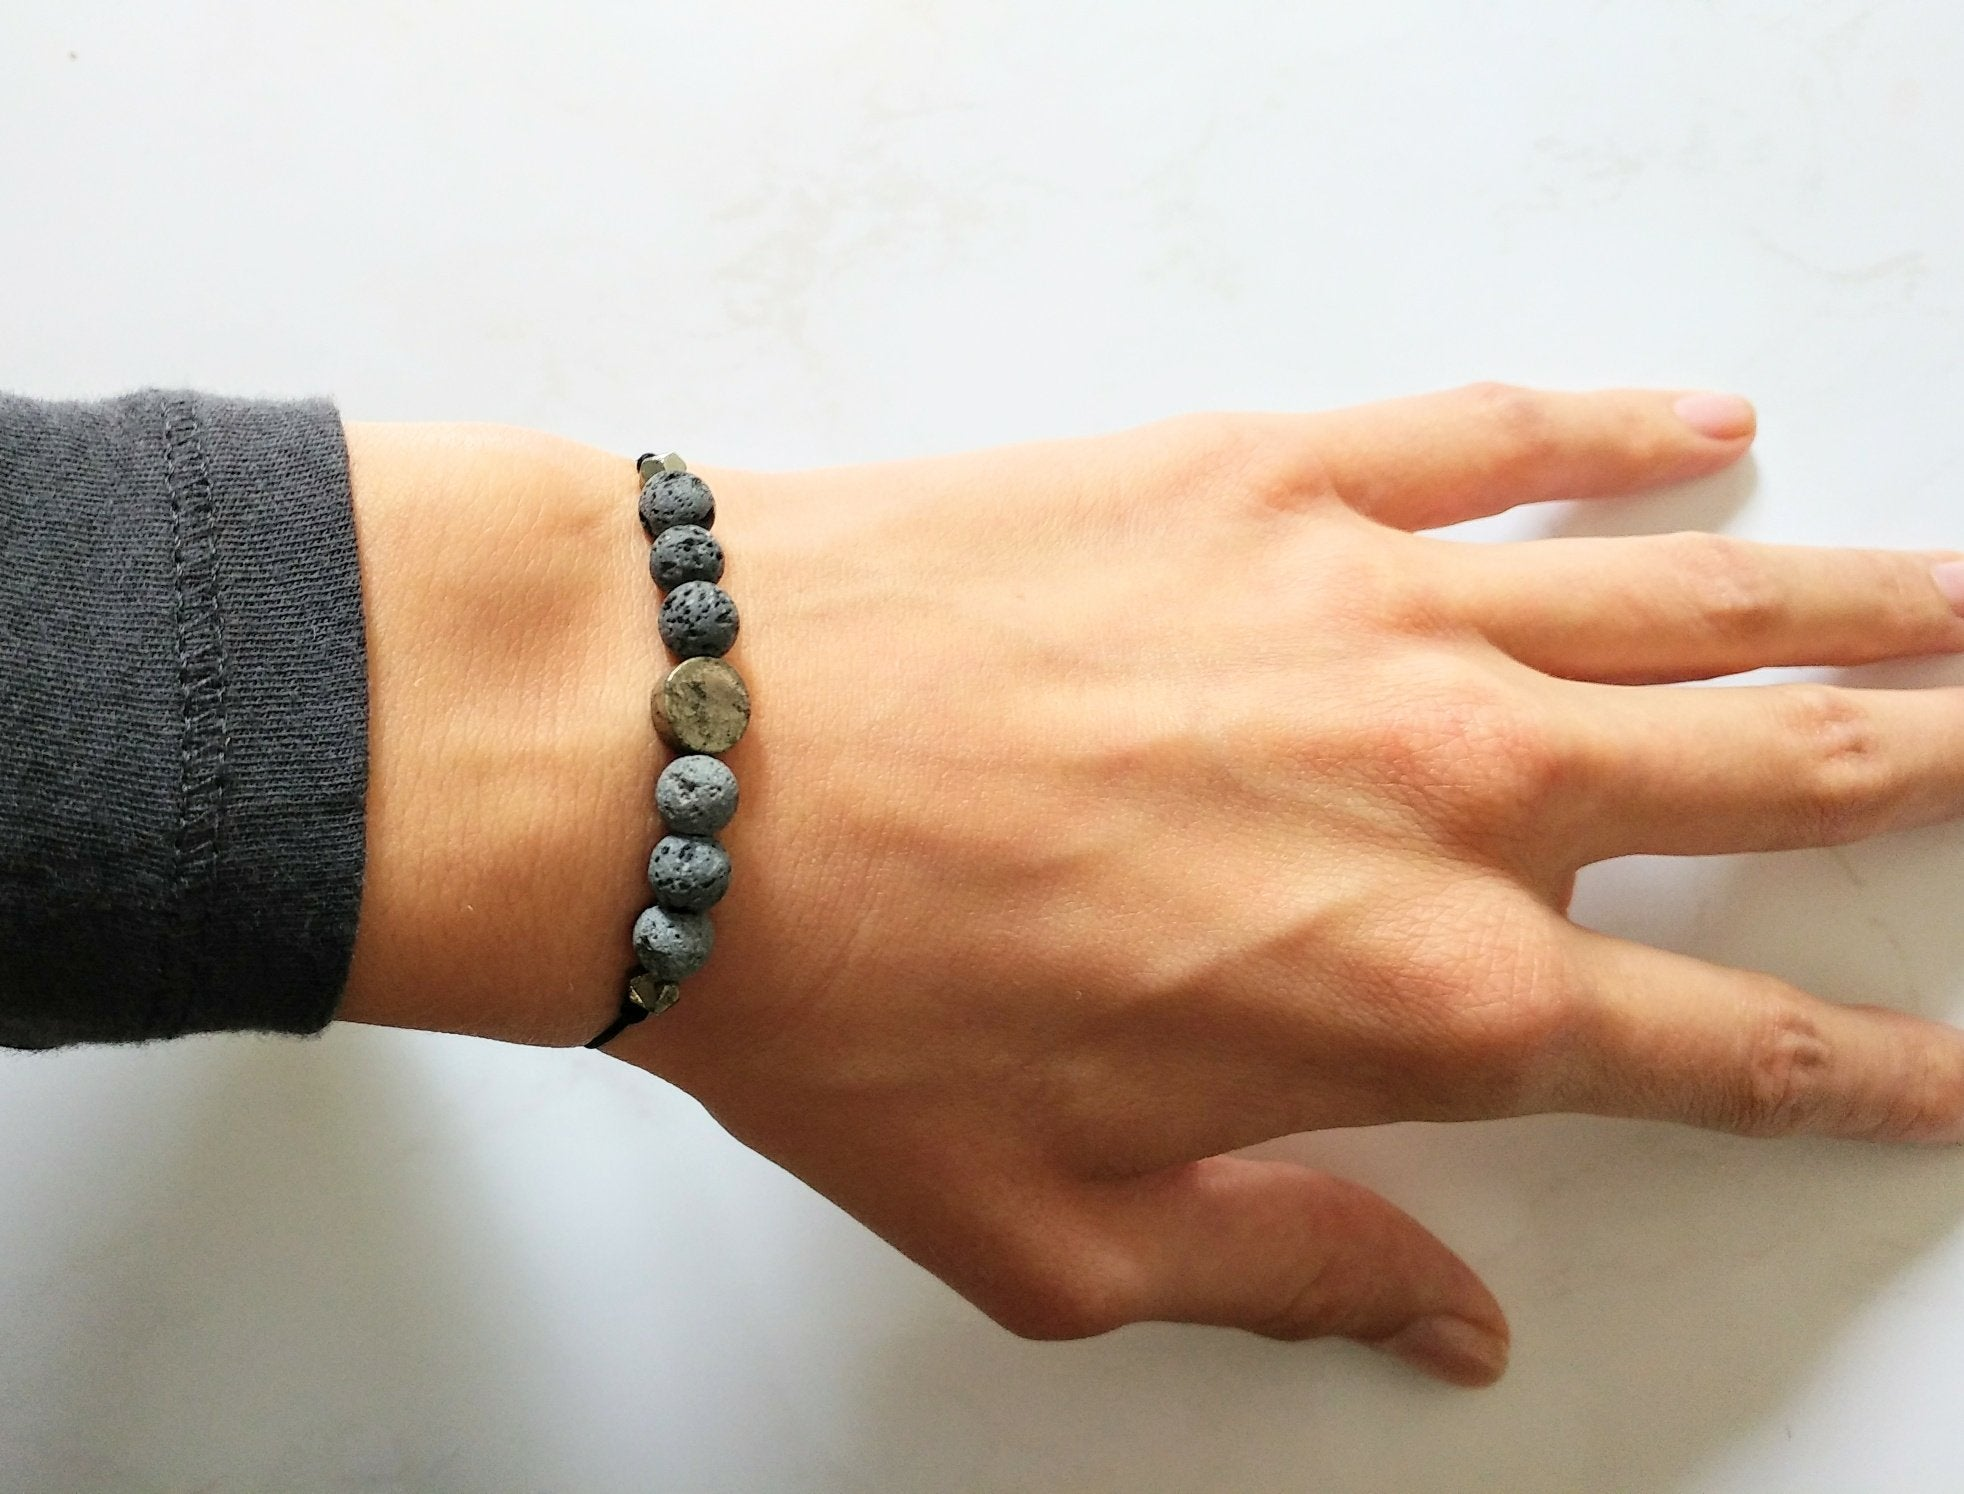 Pyrit & Lava Armband | Aroma Diffuser Armband | pia norden